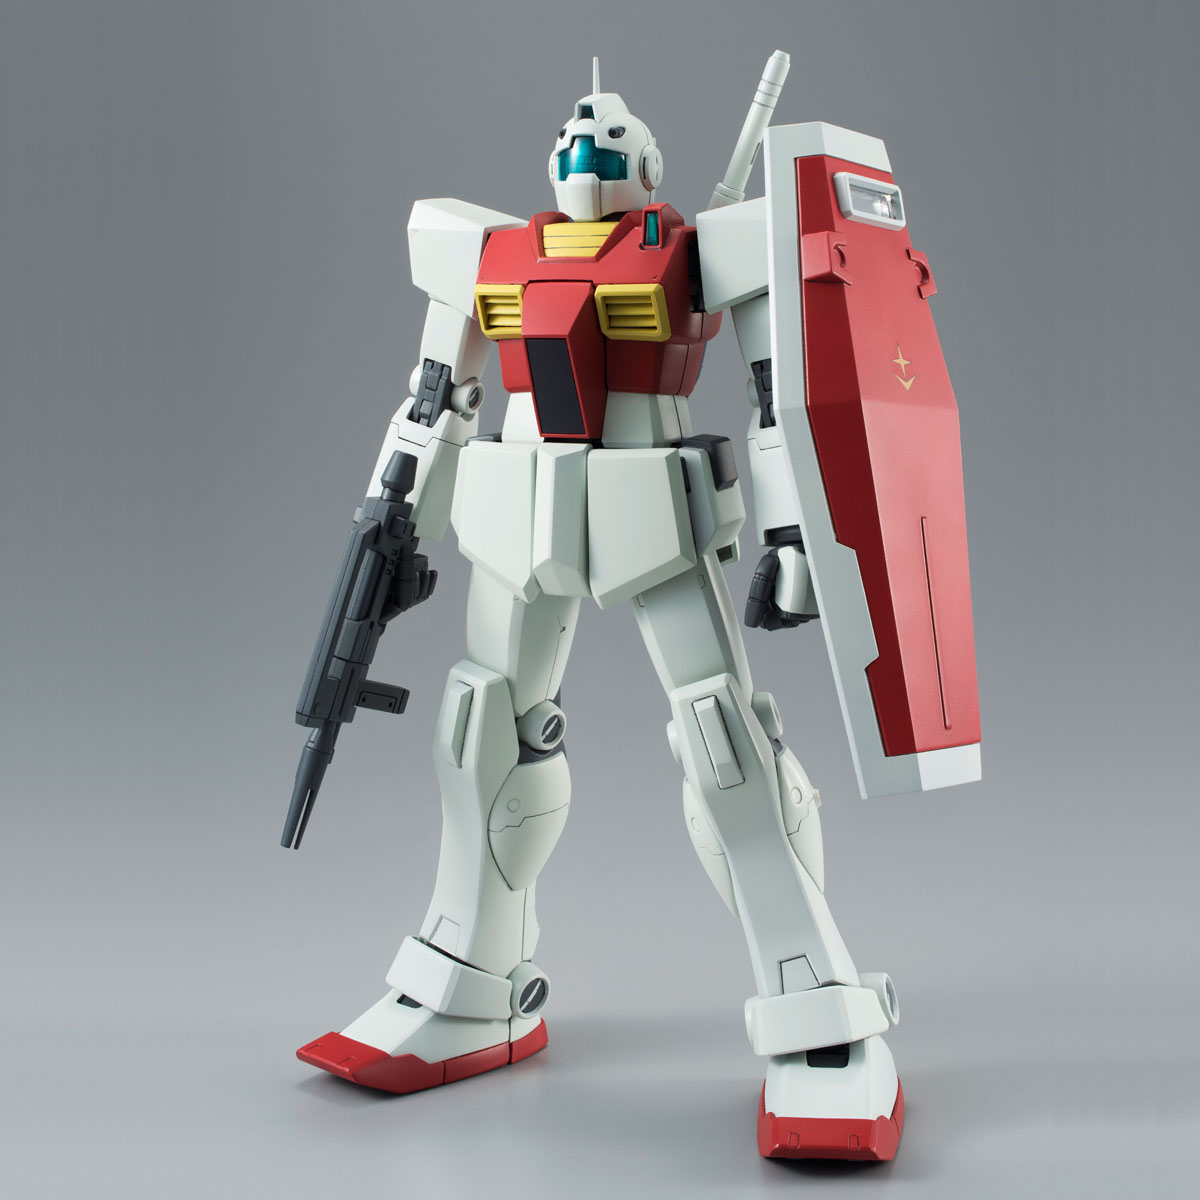 54334MG 1/100 RMS-179 ジムII(ユニコーンVer.) [GM II (Unicorn Ver.)]